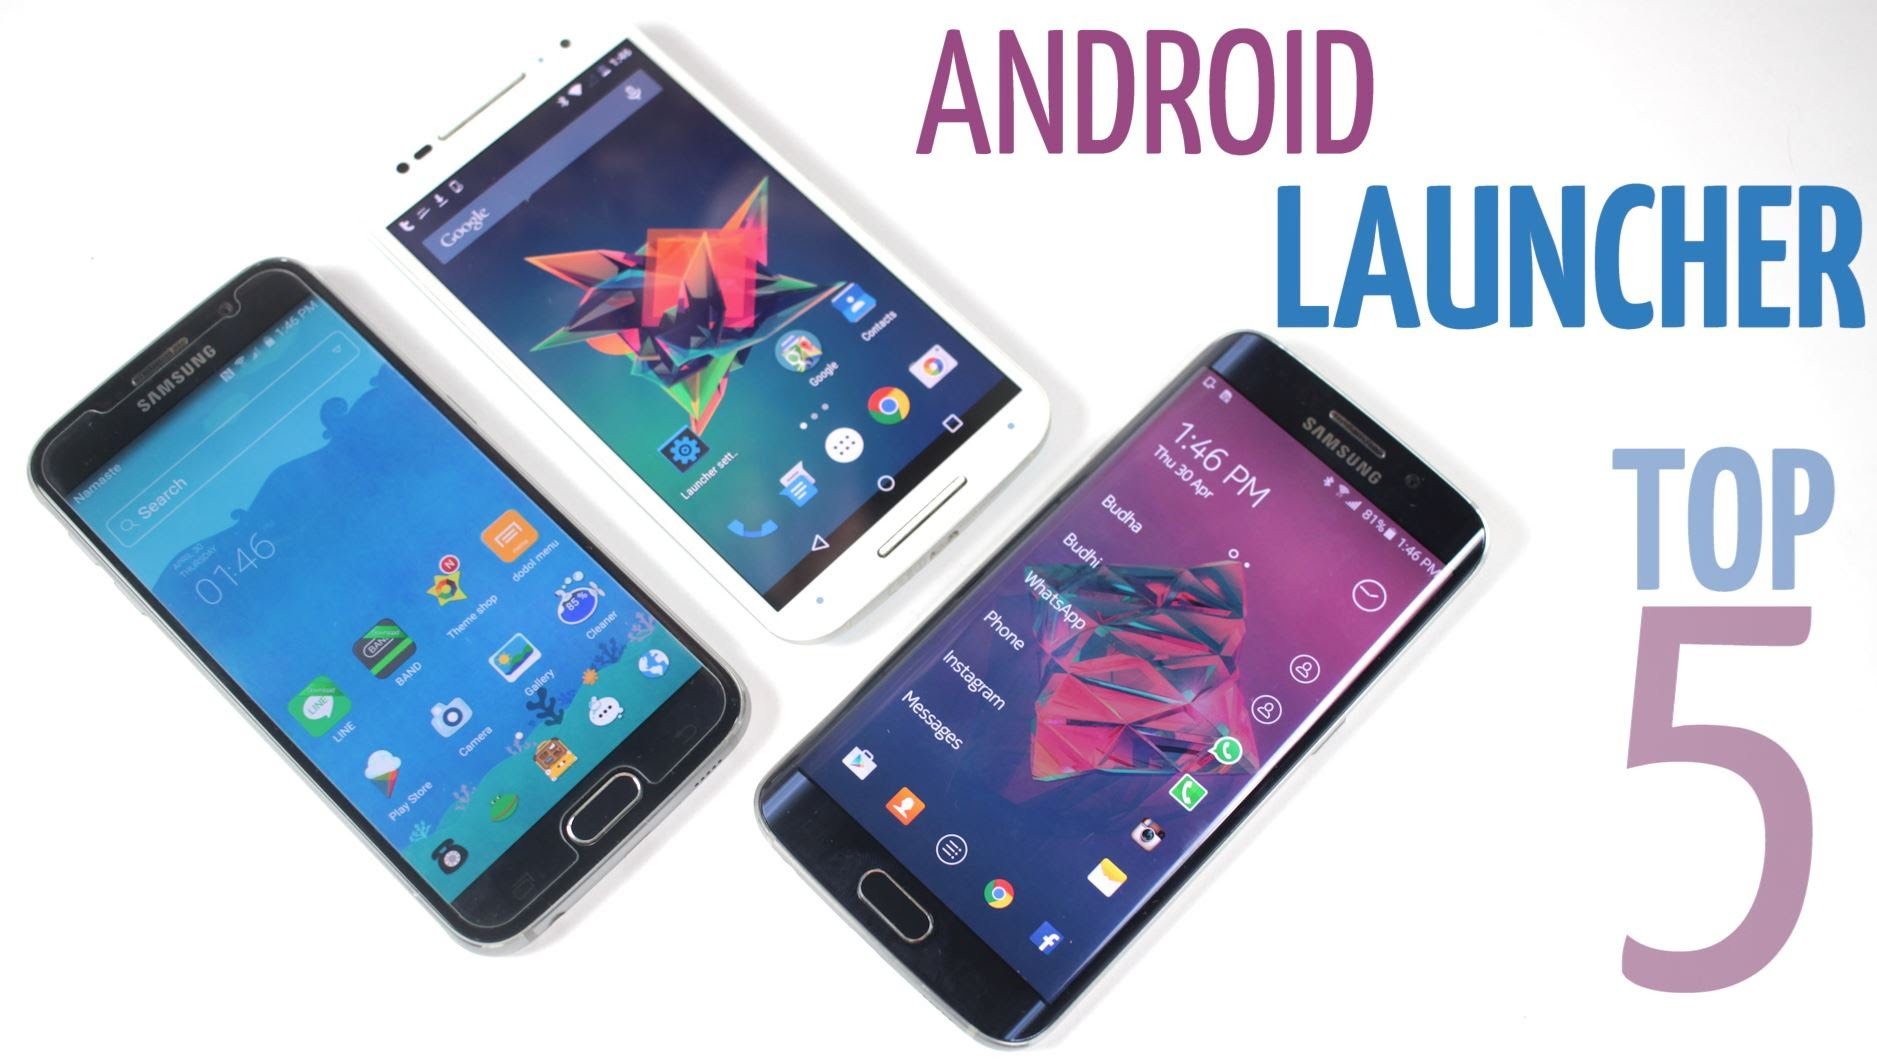 Camera Super Fast Android Phone 5 most fast and light launchers android 2016 droidopinions customize your phone make it faster then i will show you these that you